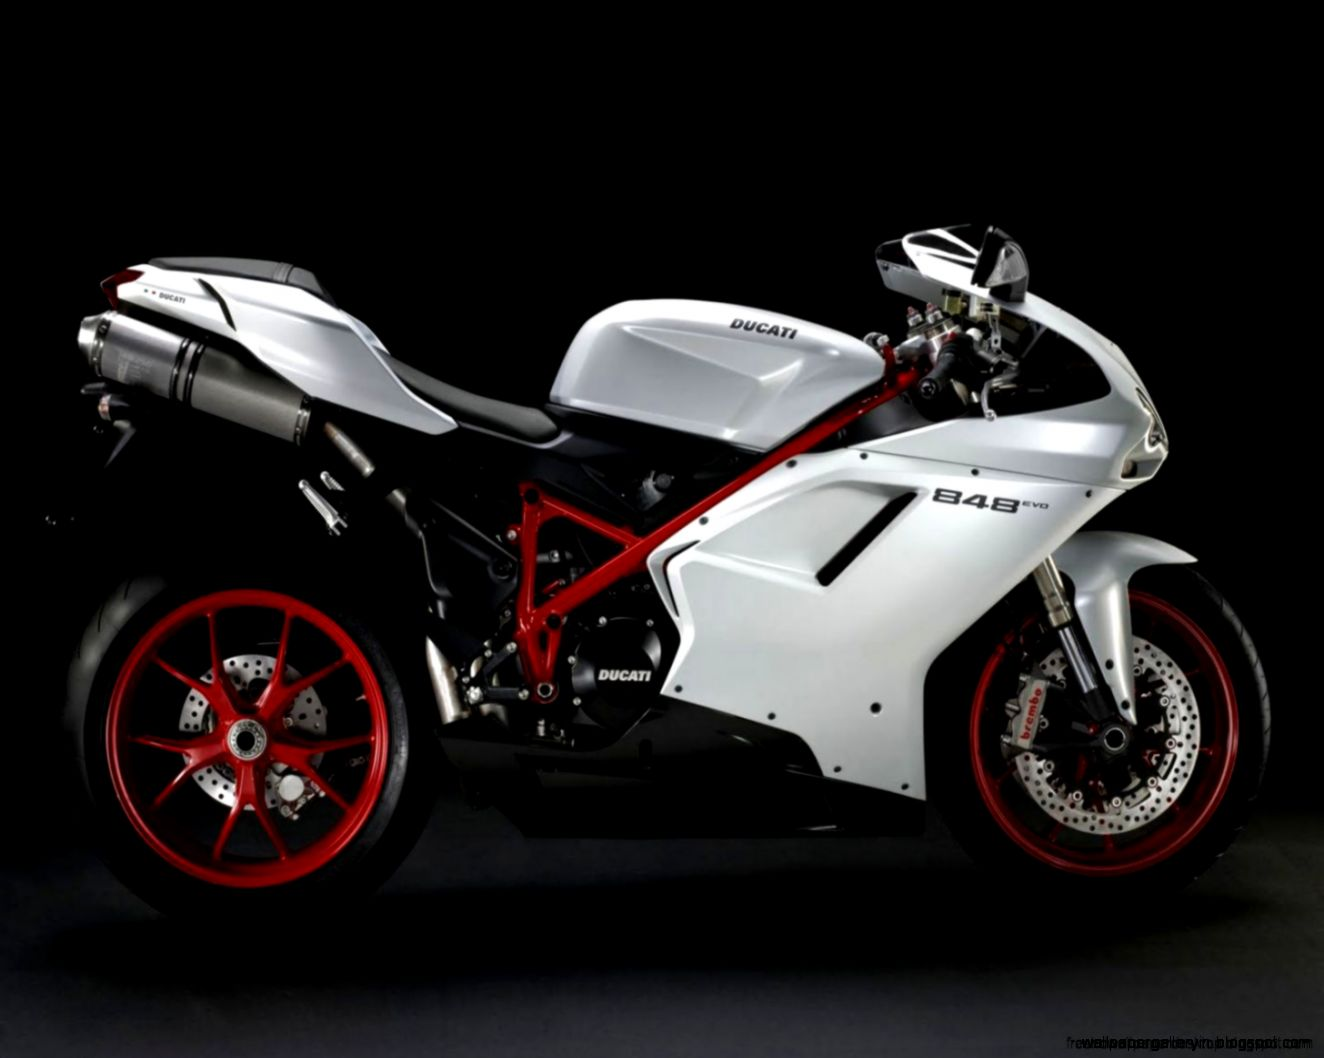 Superbike Ducati 848 Evo Side Cool Wallpaper Desktop  Free High